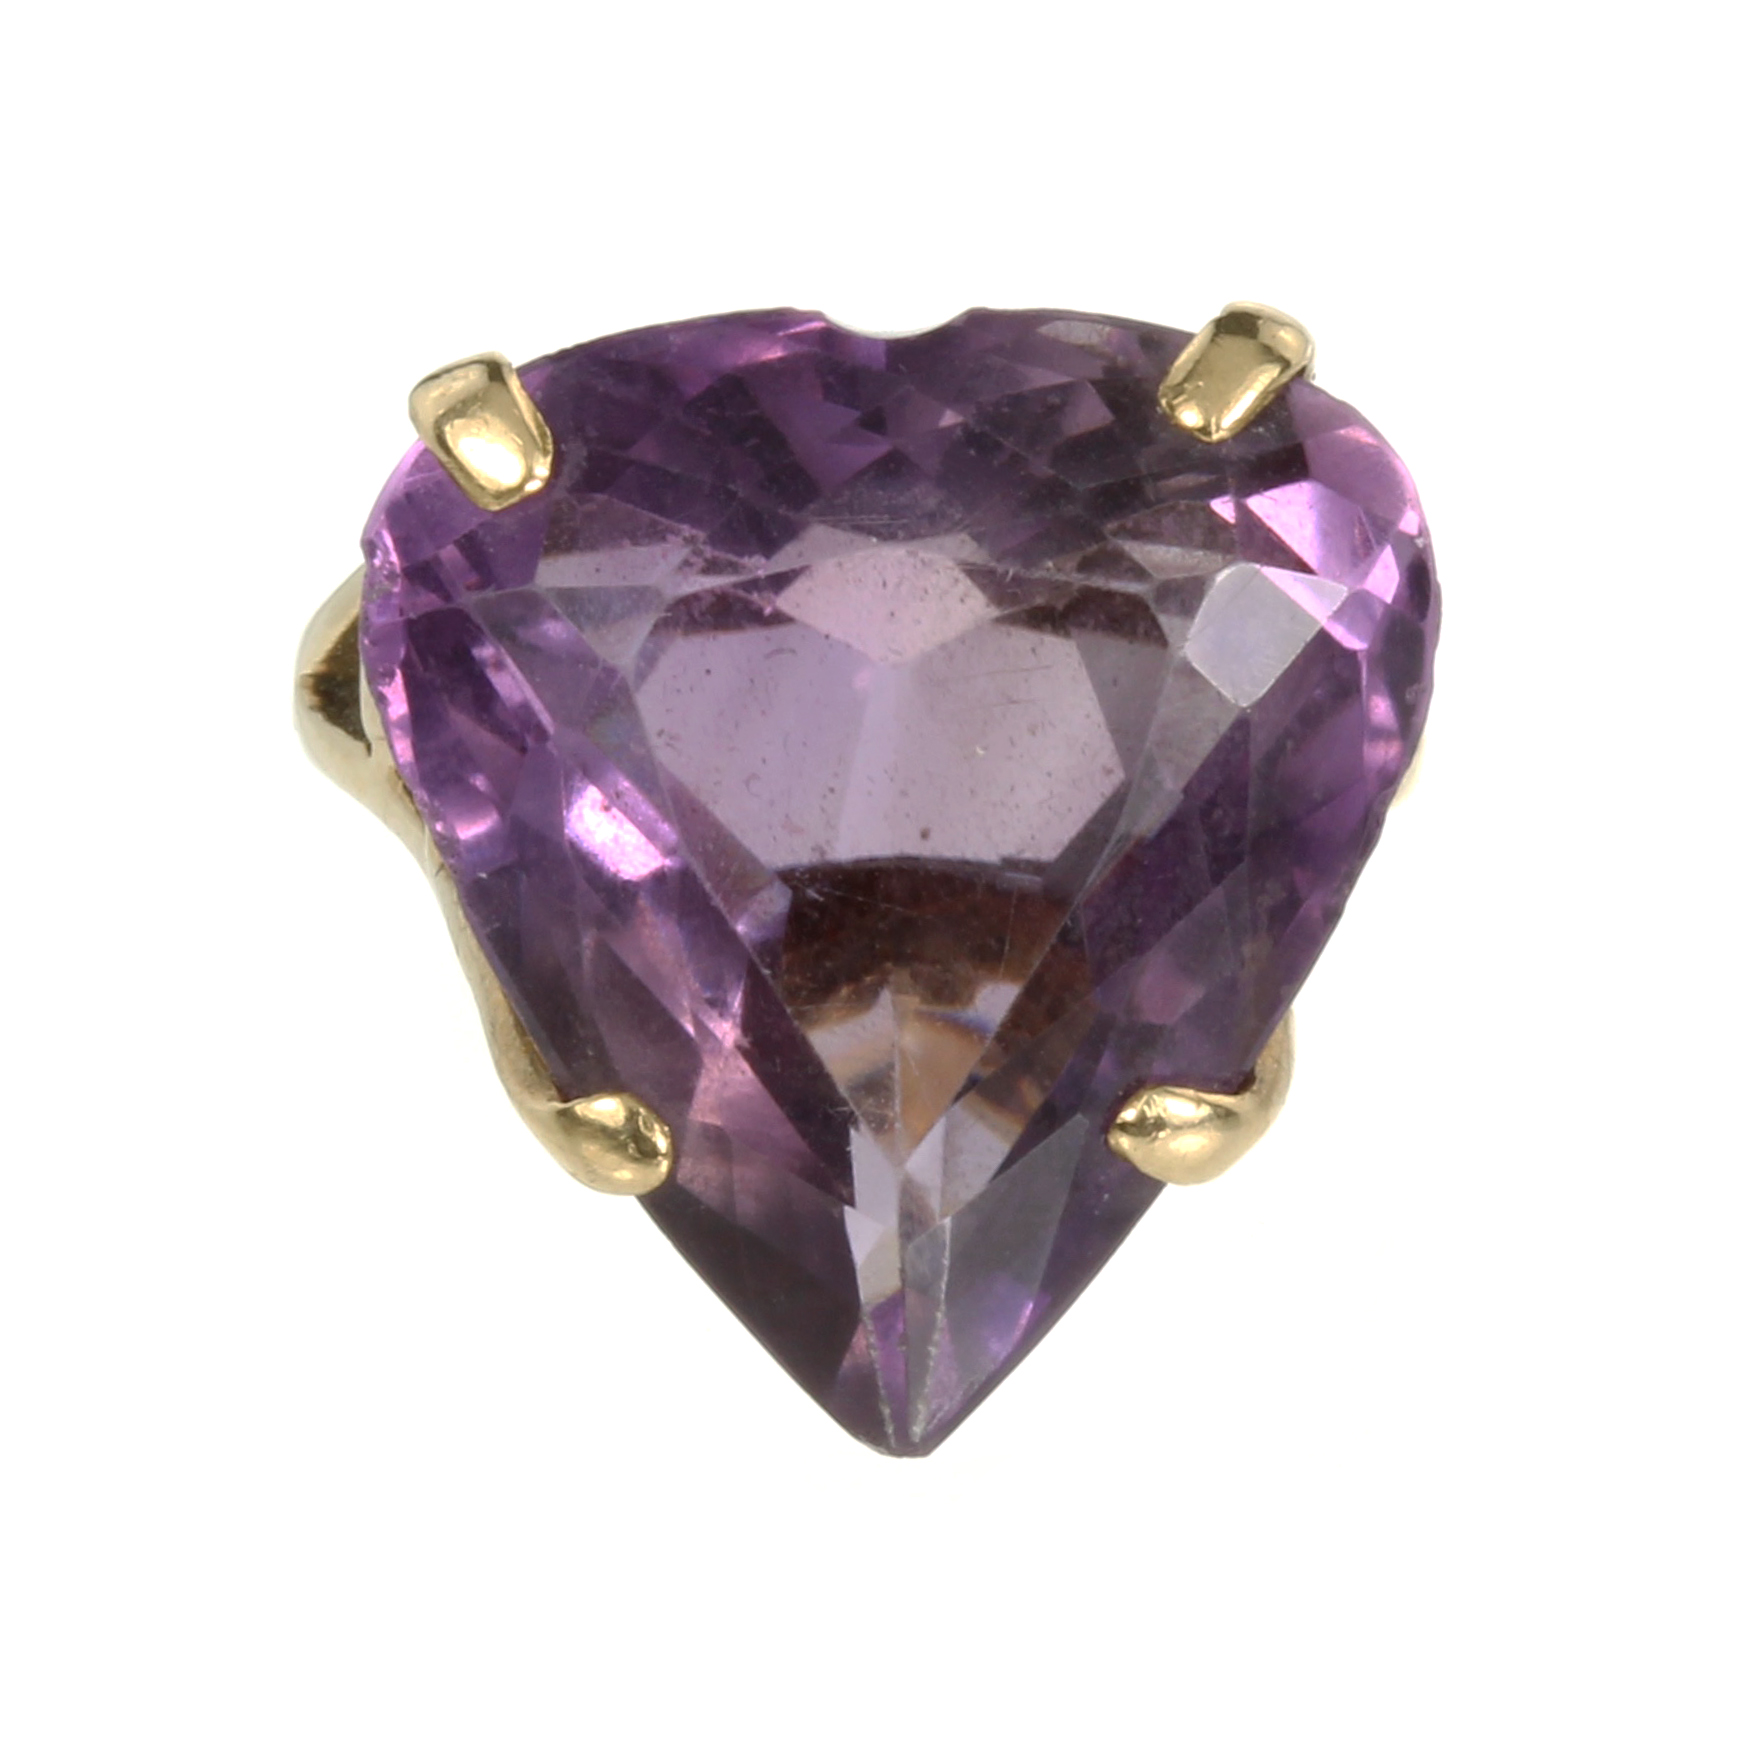 Los 32 - AN AMETHYST HEART DRESS RING set with a large heart cut amethyst in a galleried mount. Ring size